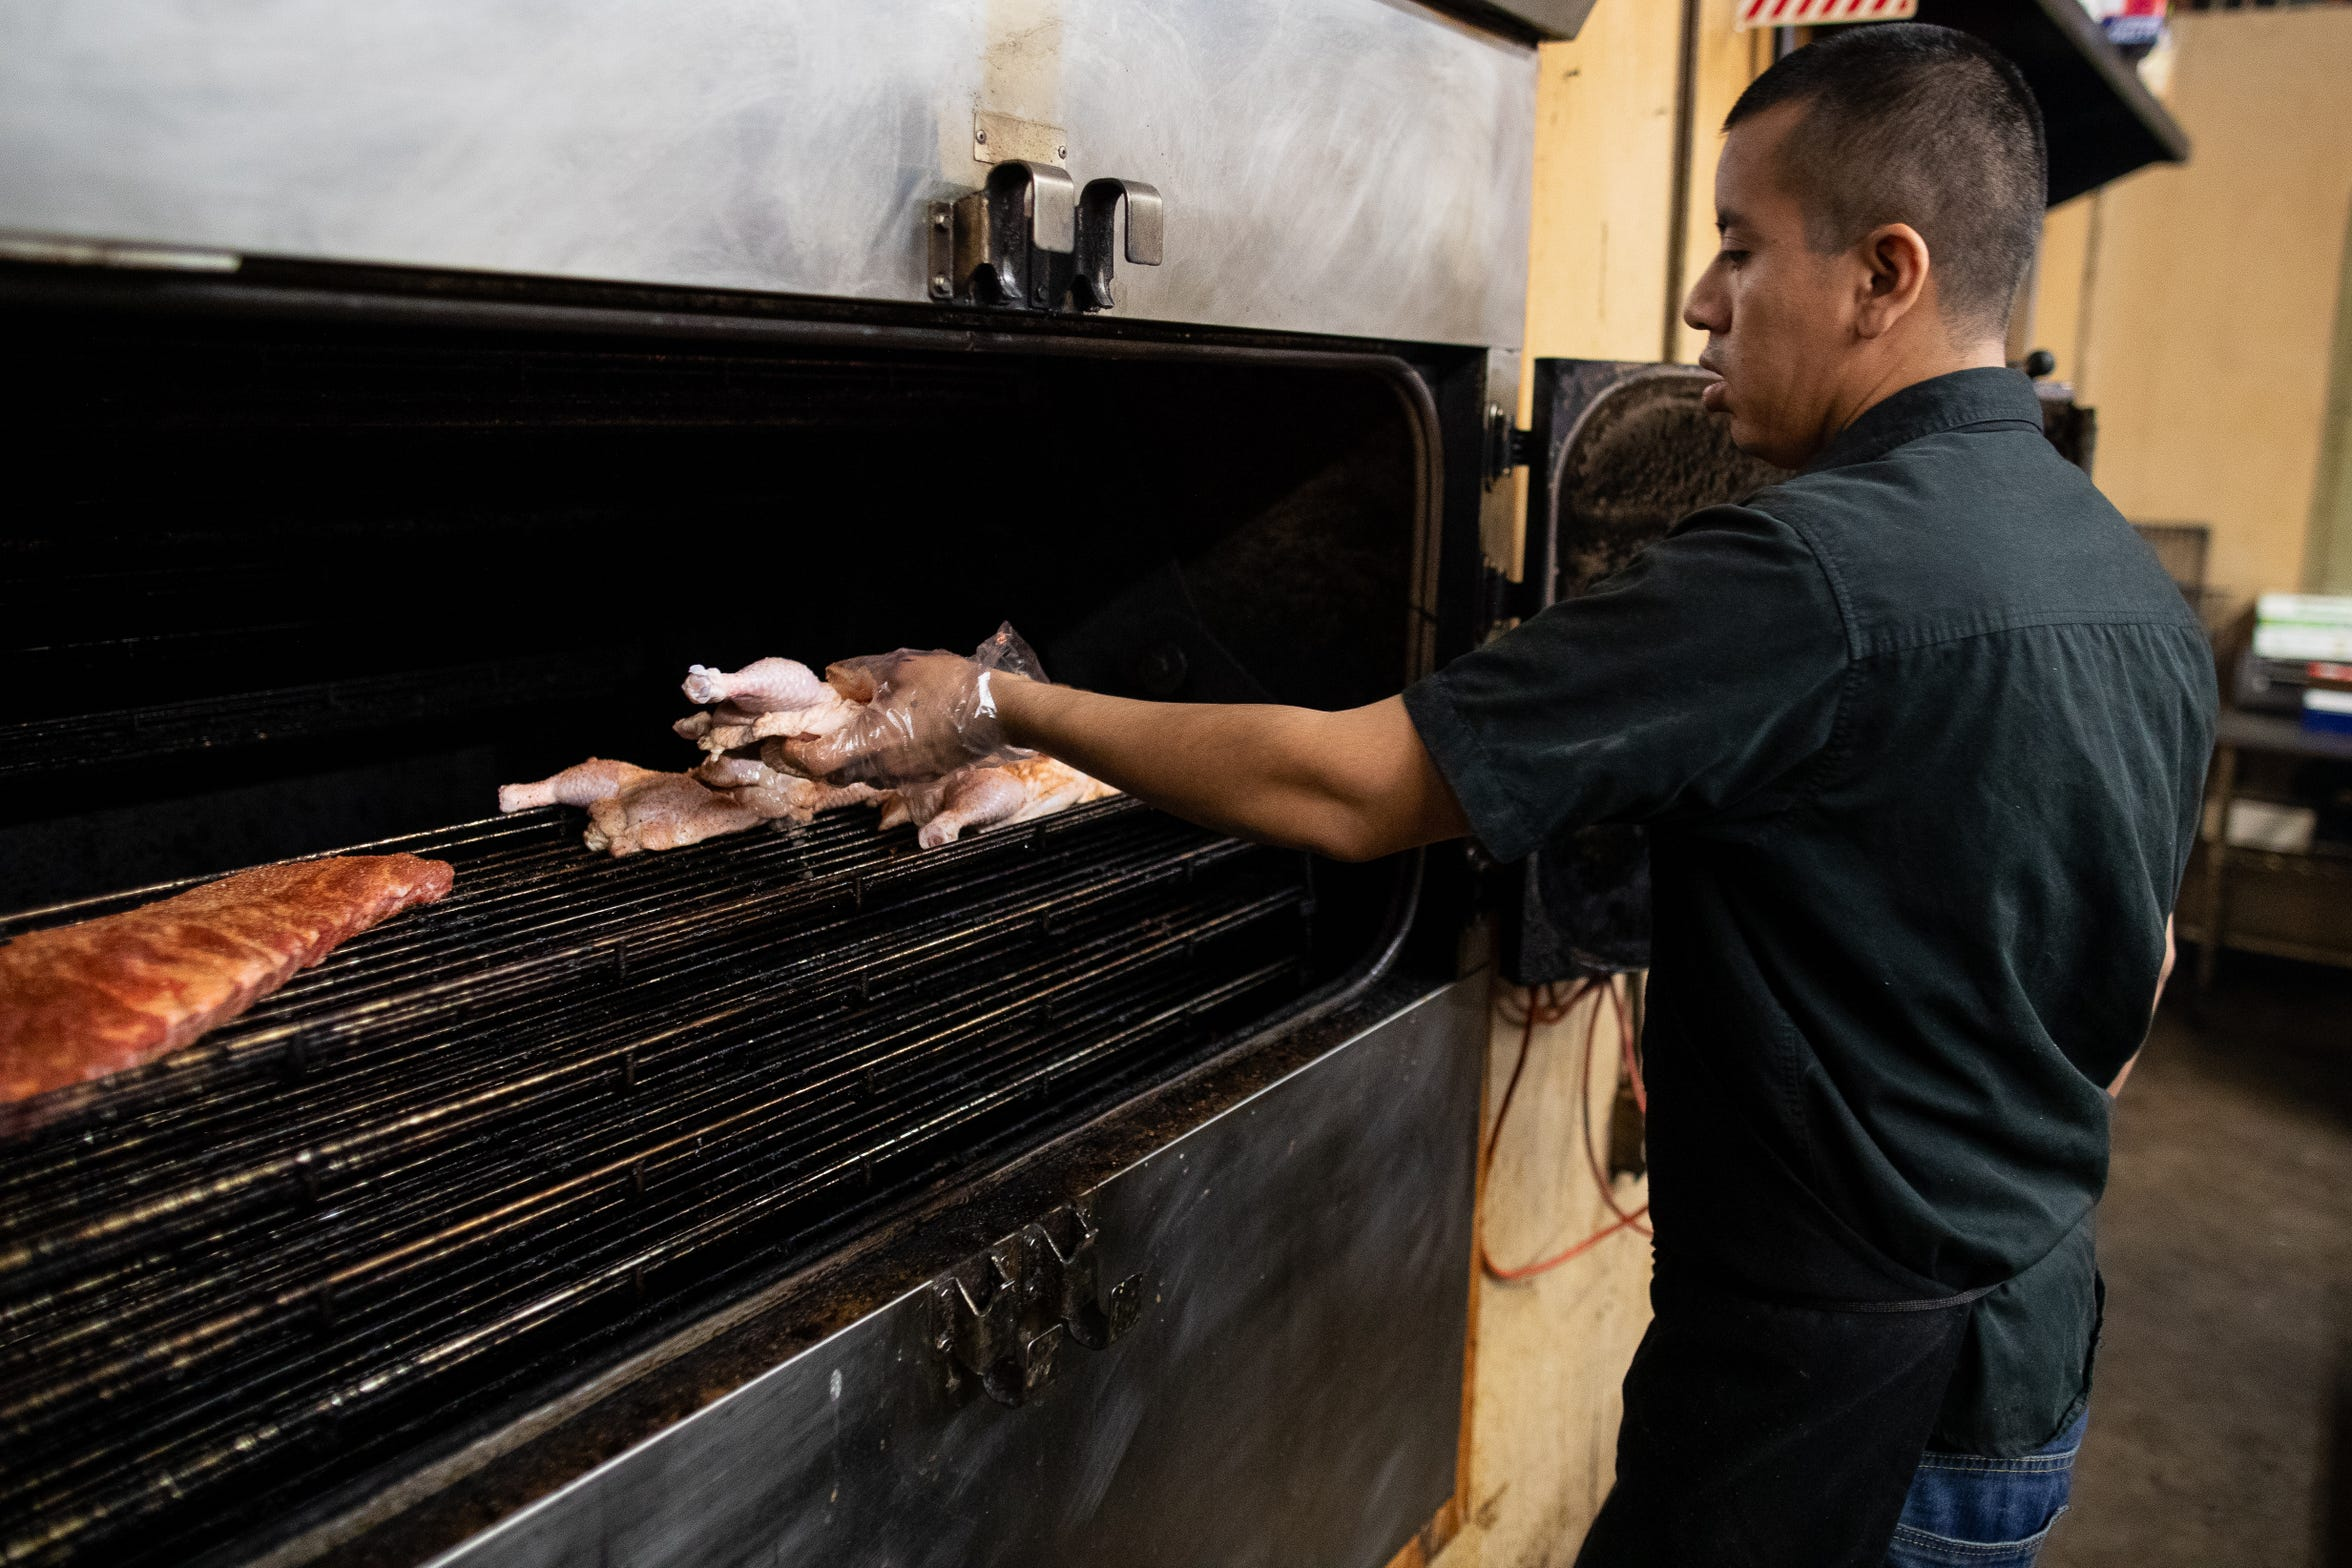 David Cabrera places chicken in the smoker at Bottomless Pit BBQ on Friday, Nov. 14, 2018.